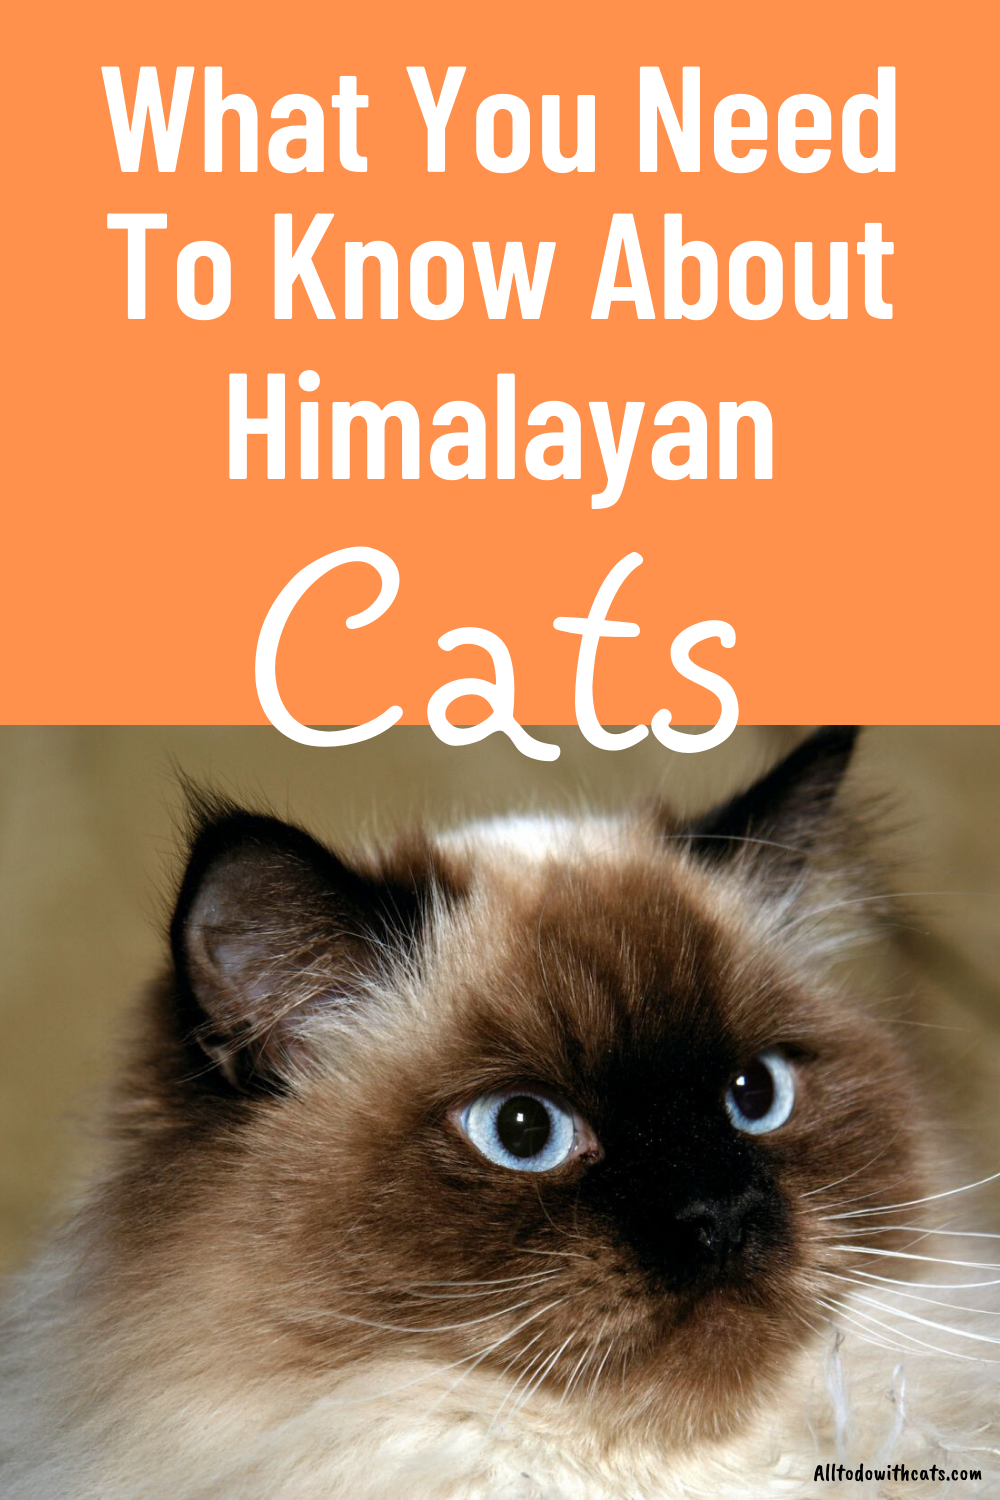 All About Himalayan Cats (The Much Loved Hybrid Breed!) in